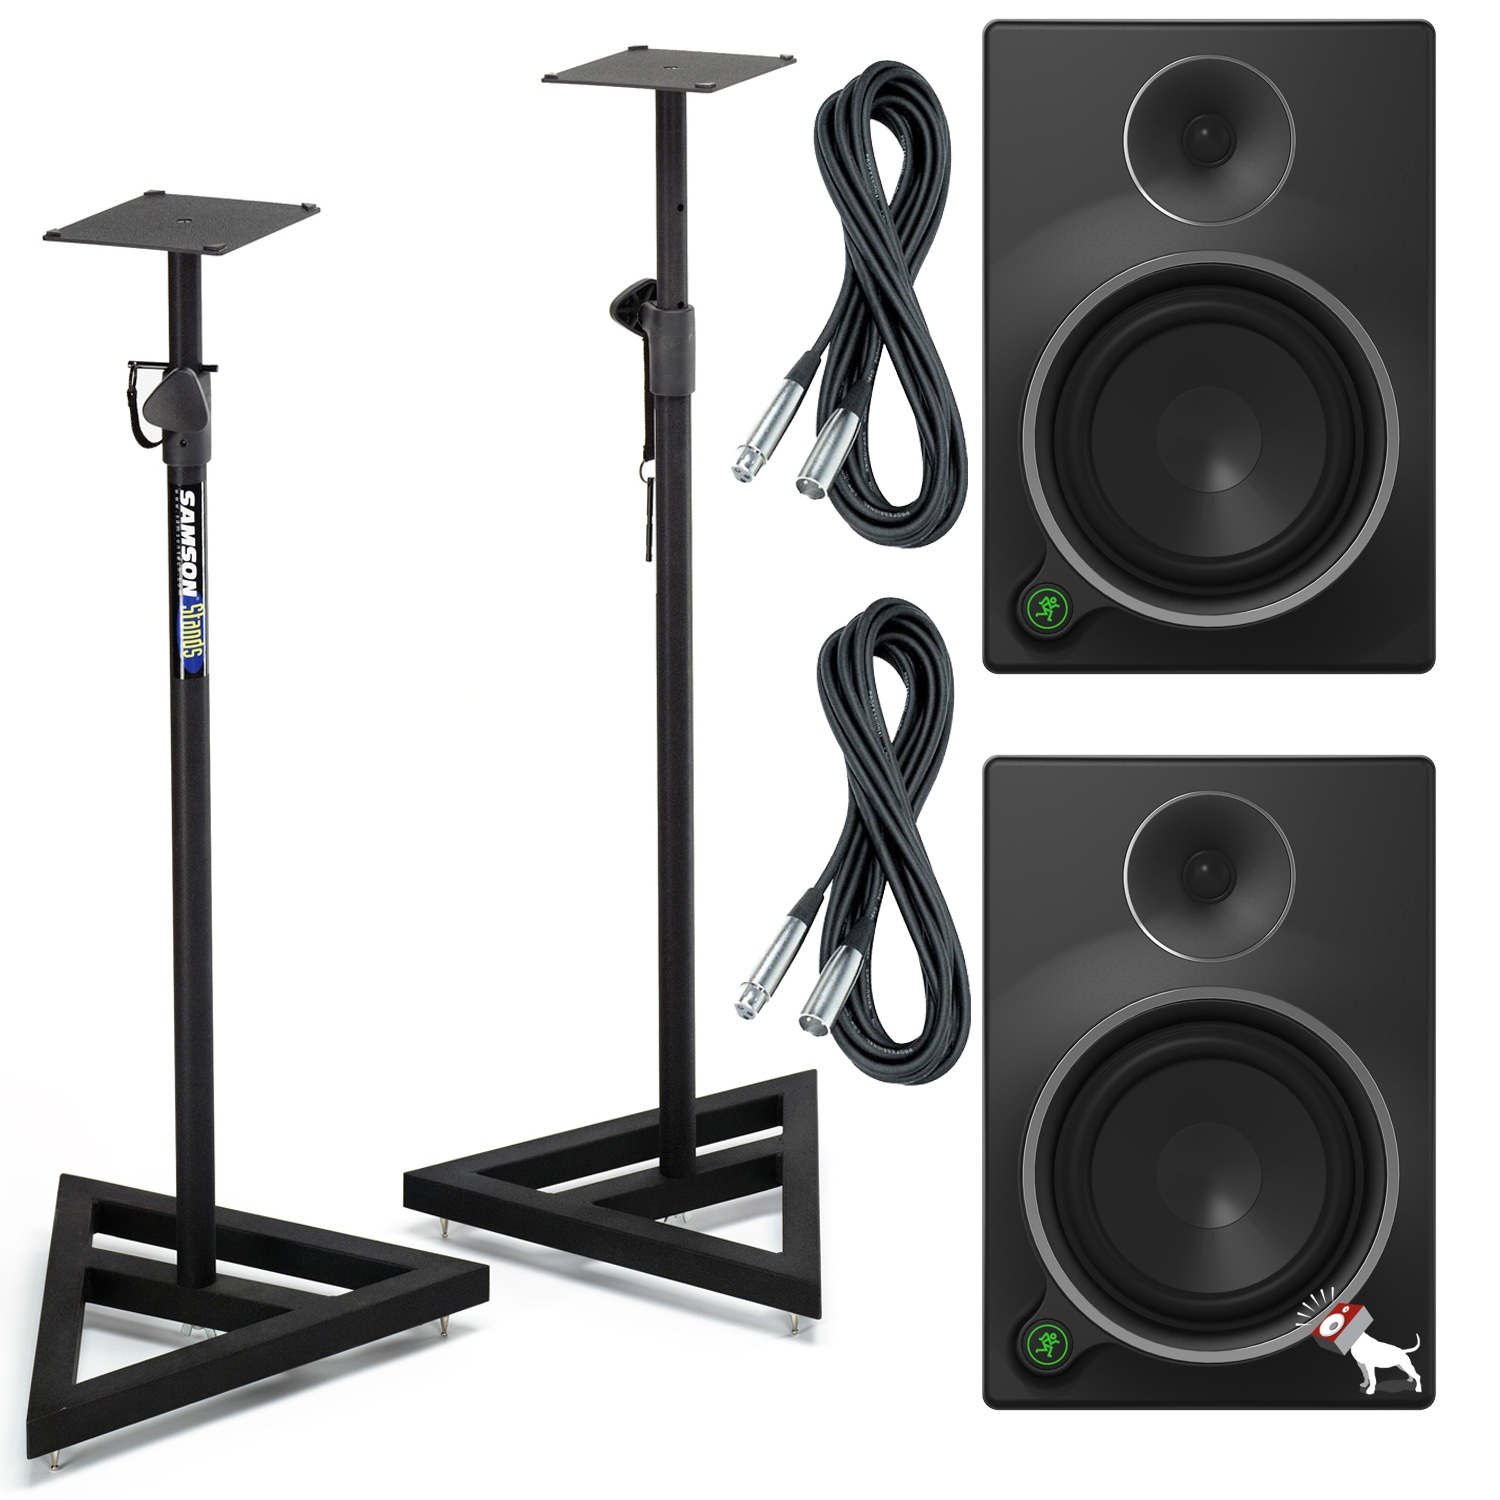 pitbull audio mackie mr8 mk3 powered studio speaker monitor pair w stands xlr cables. Black Bedroom Furniture Sets. Home Design Ideas